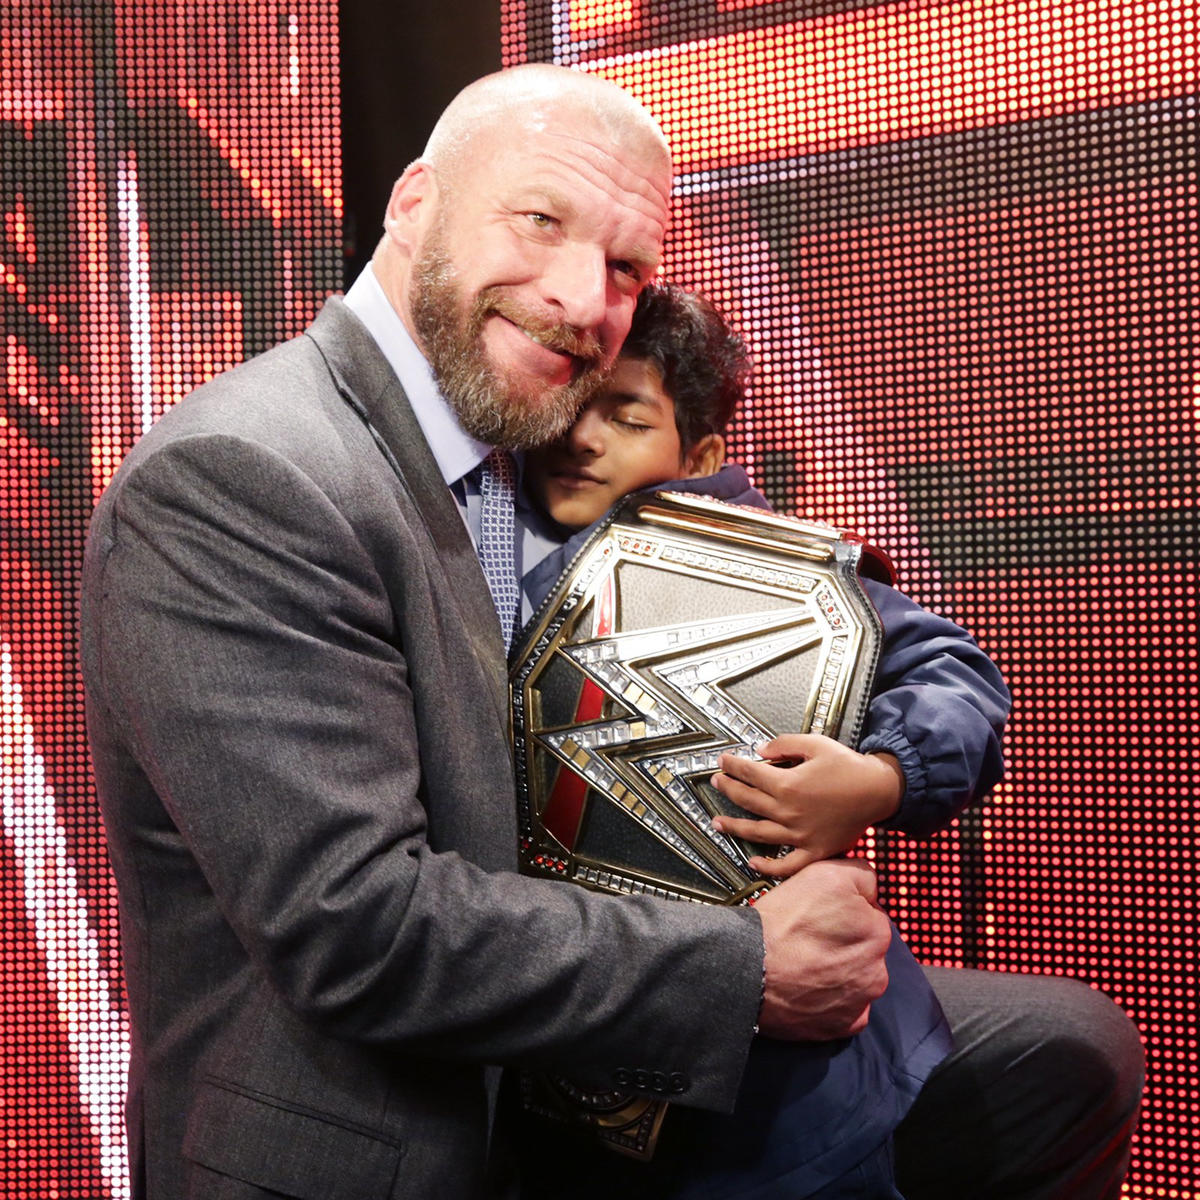 Celebrities meet superstars backstage at raw in los angeles photos wwe photo m4hsunfo